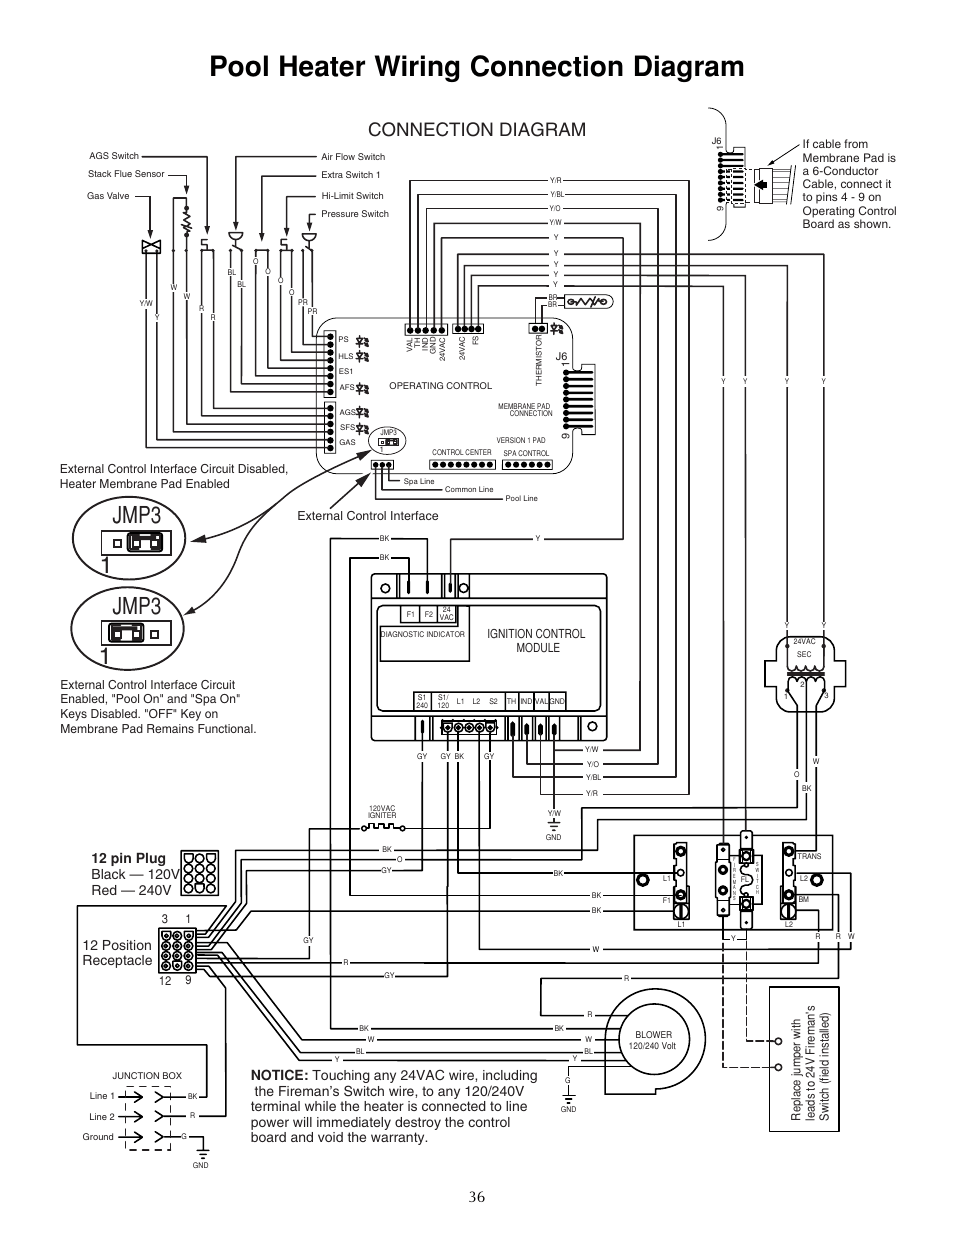 hight resolution of pool heater wiring schematics wiring diagram blog raypak wiring diagram